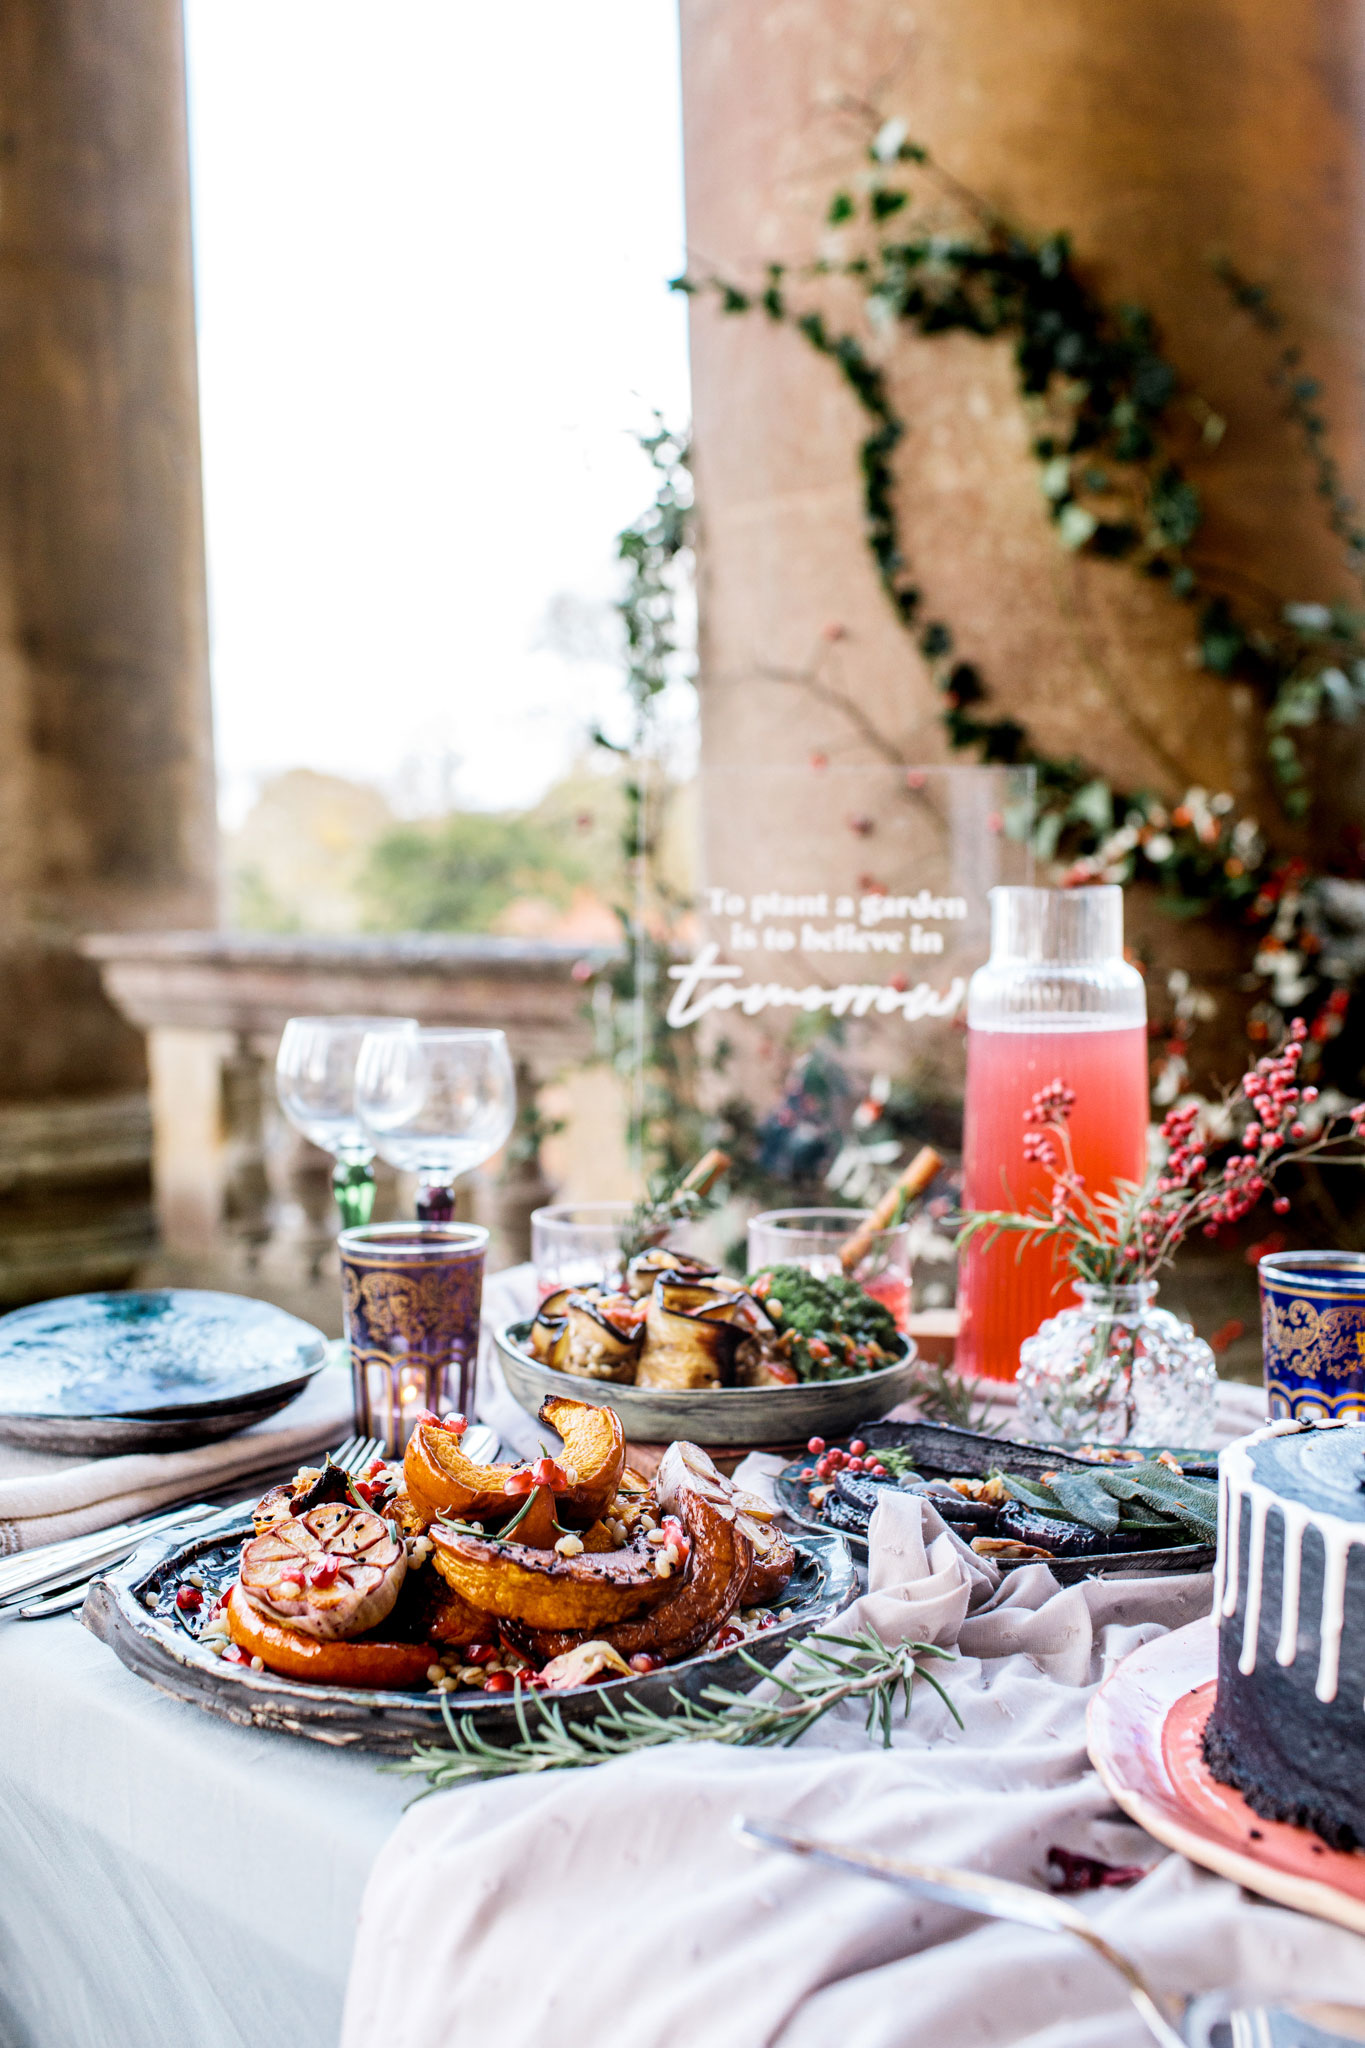 small grazing table setup for two in bath for an elopement wedding